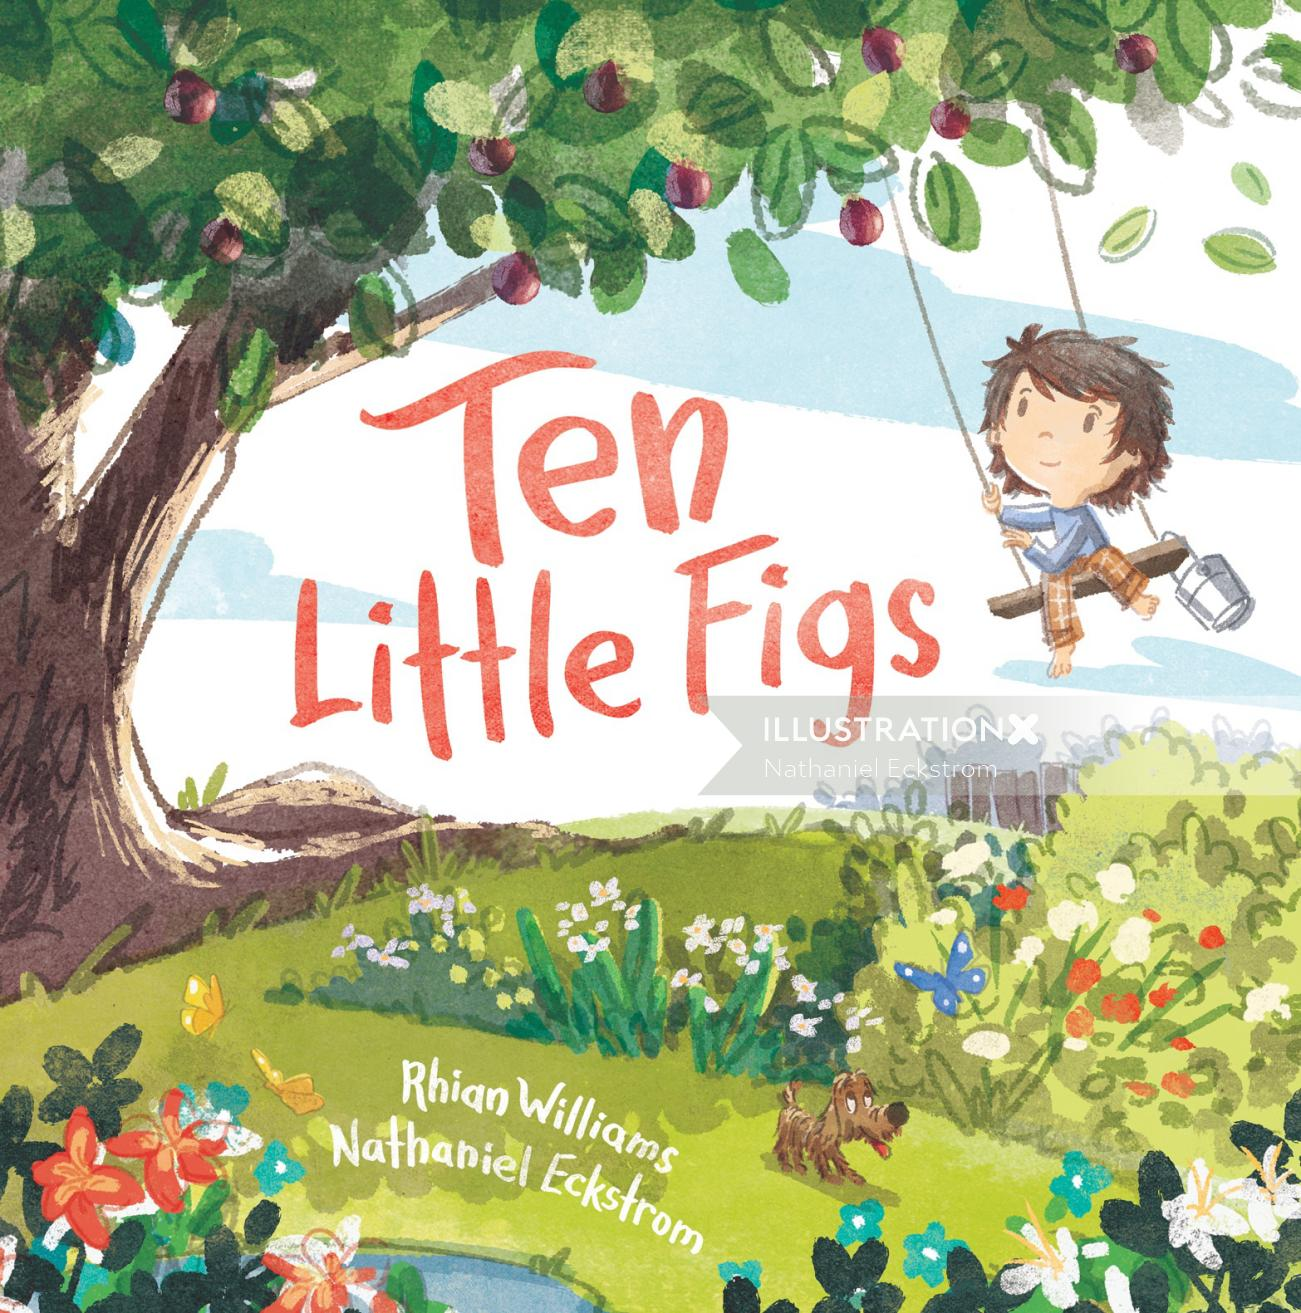 Book cover design of Ten Little Figs for Walker Books